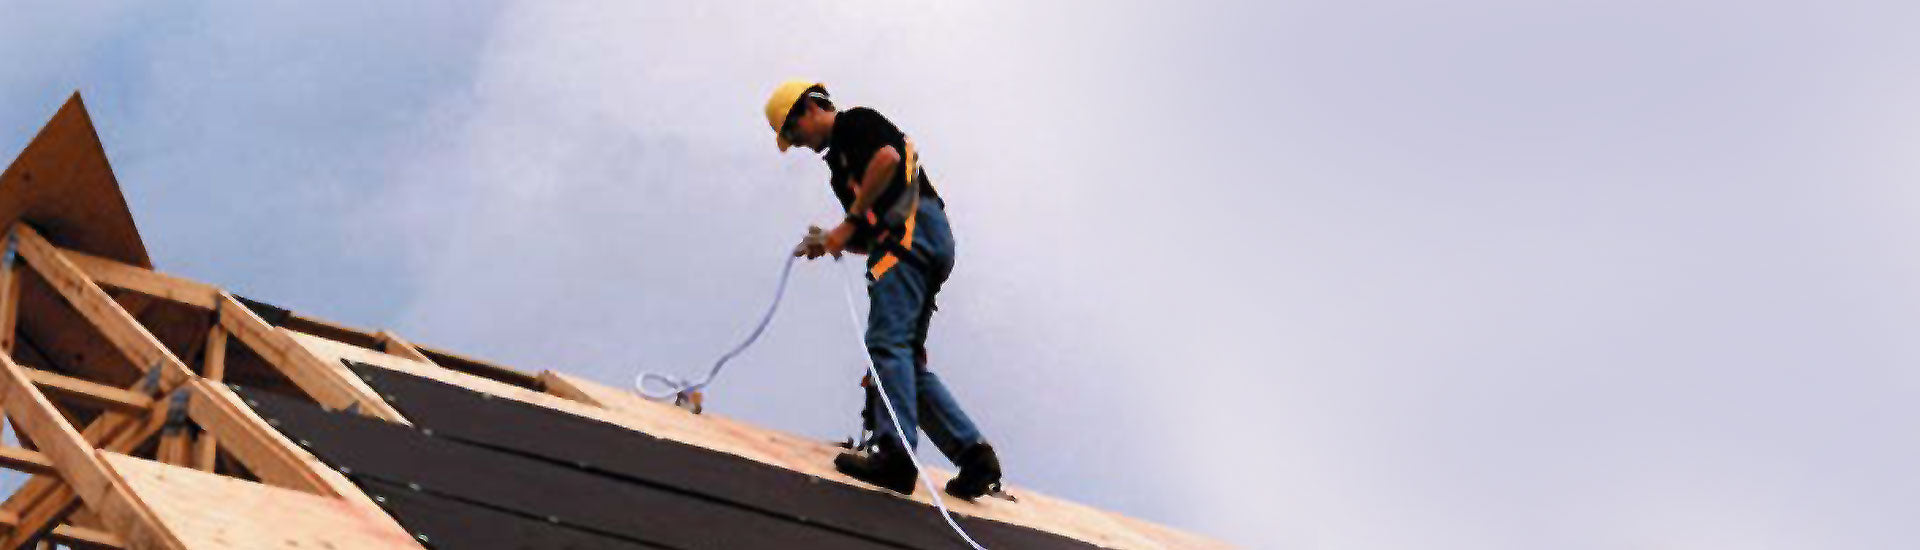 Roofer Harness Kits